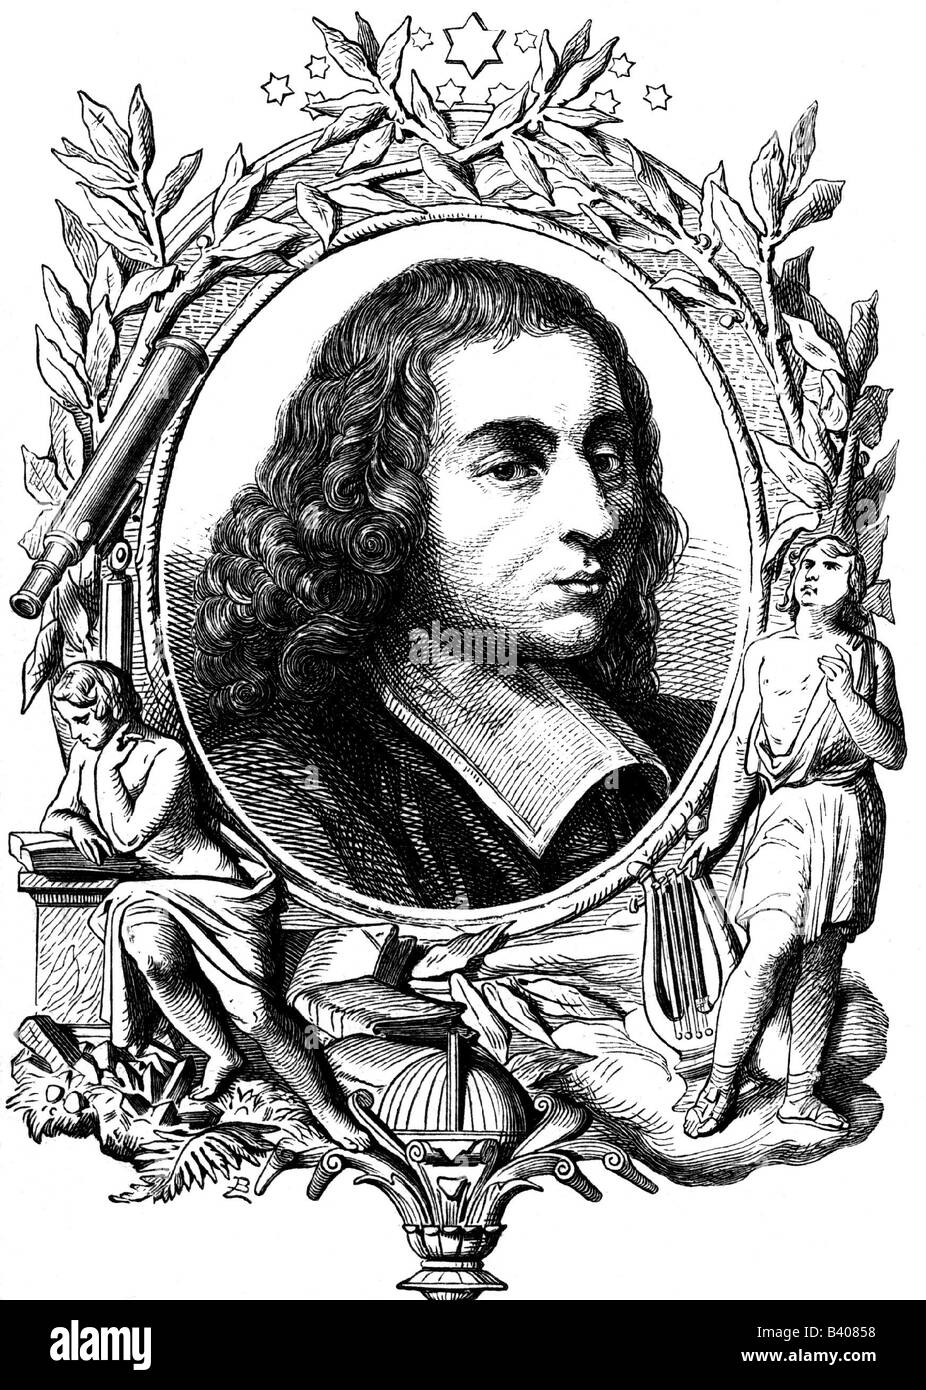 Pascal, Blaise, 19.6.1623 - 19.8.1662, French mathematician, philosopher and physicist, portrait, allegorical portrayal, - Stock Image